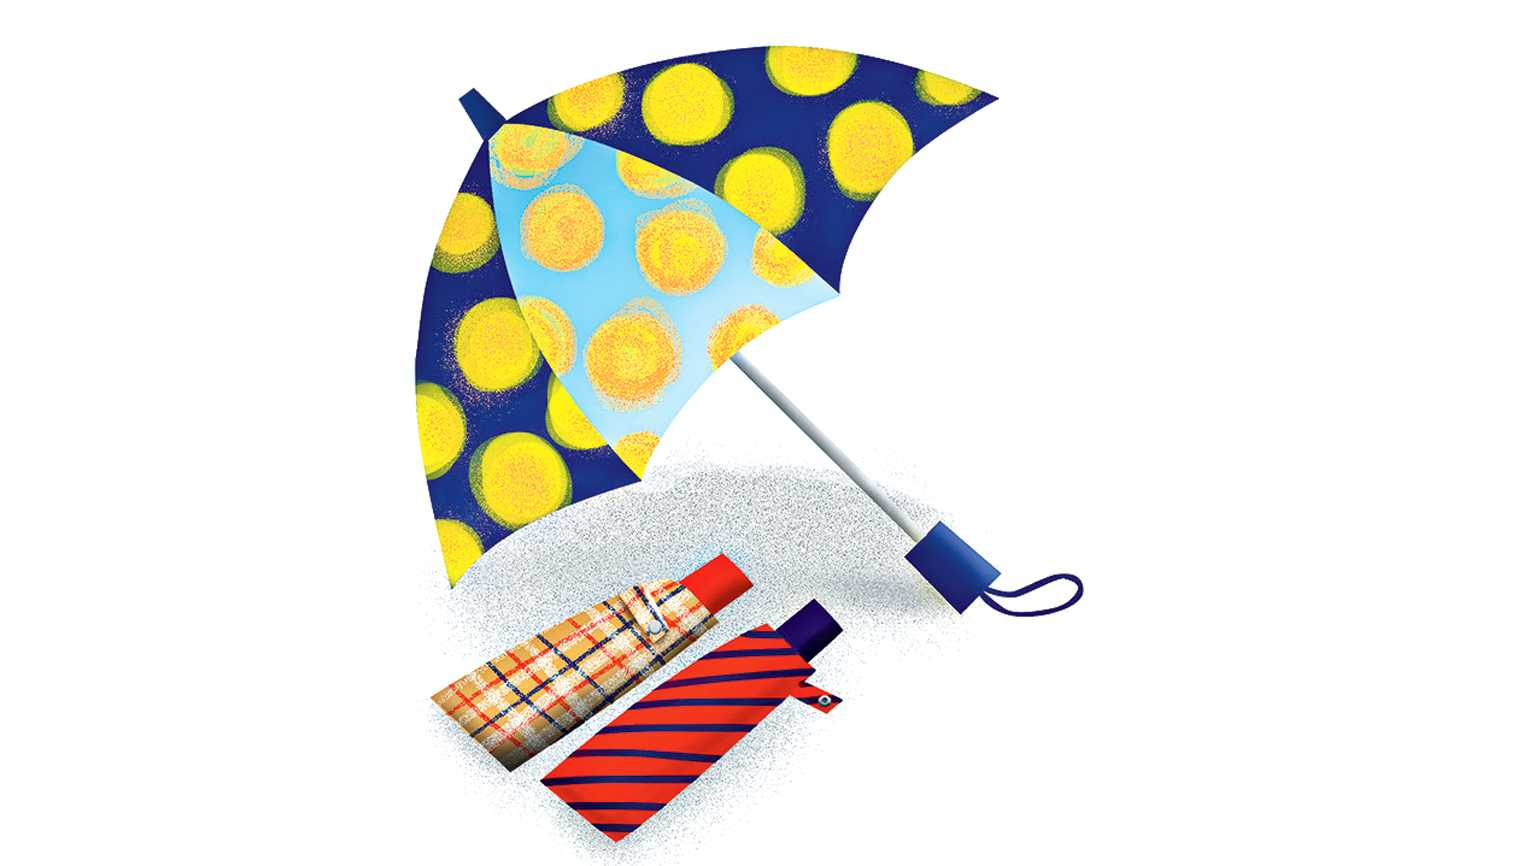 An illustration of three beautifully patterned umbrellas.